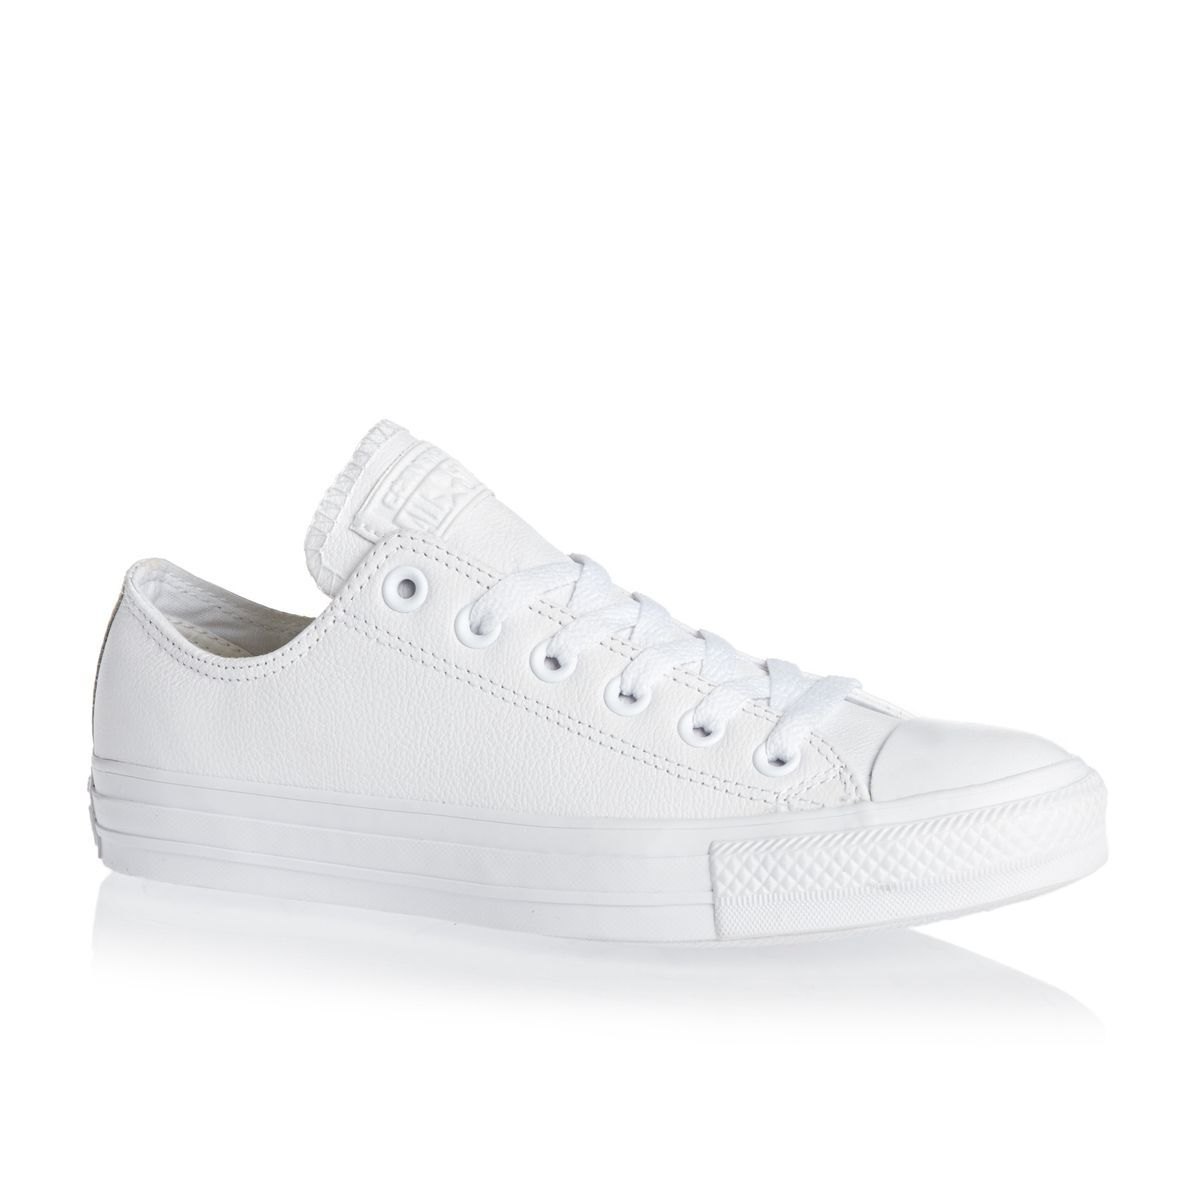 Converse Chuck Taylor All Star Leather Ox Shoes - White